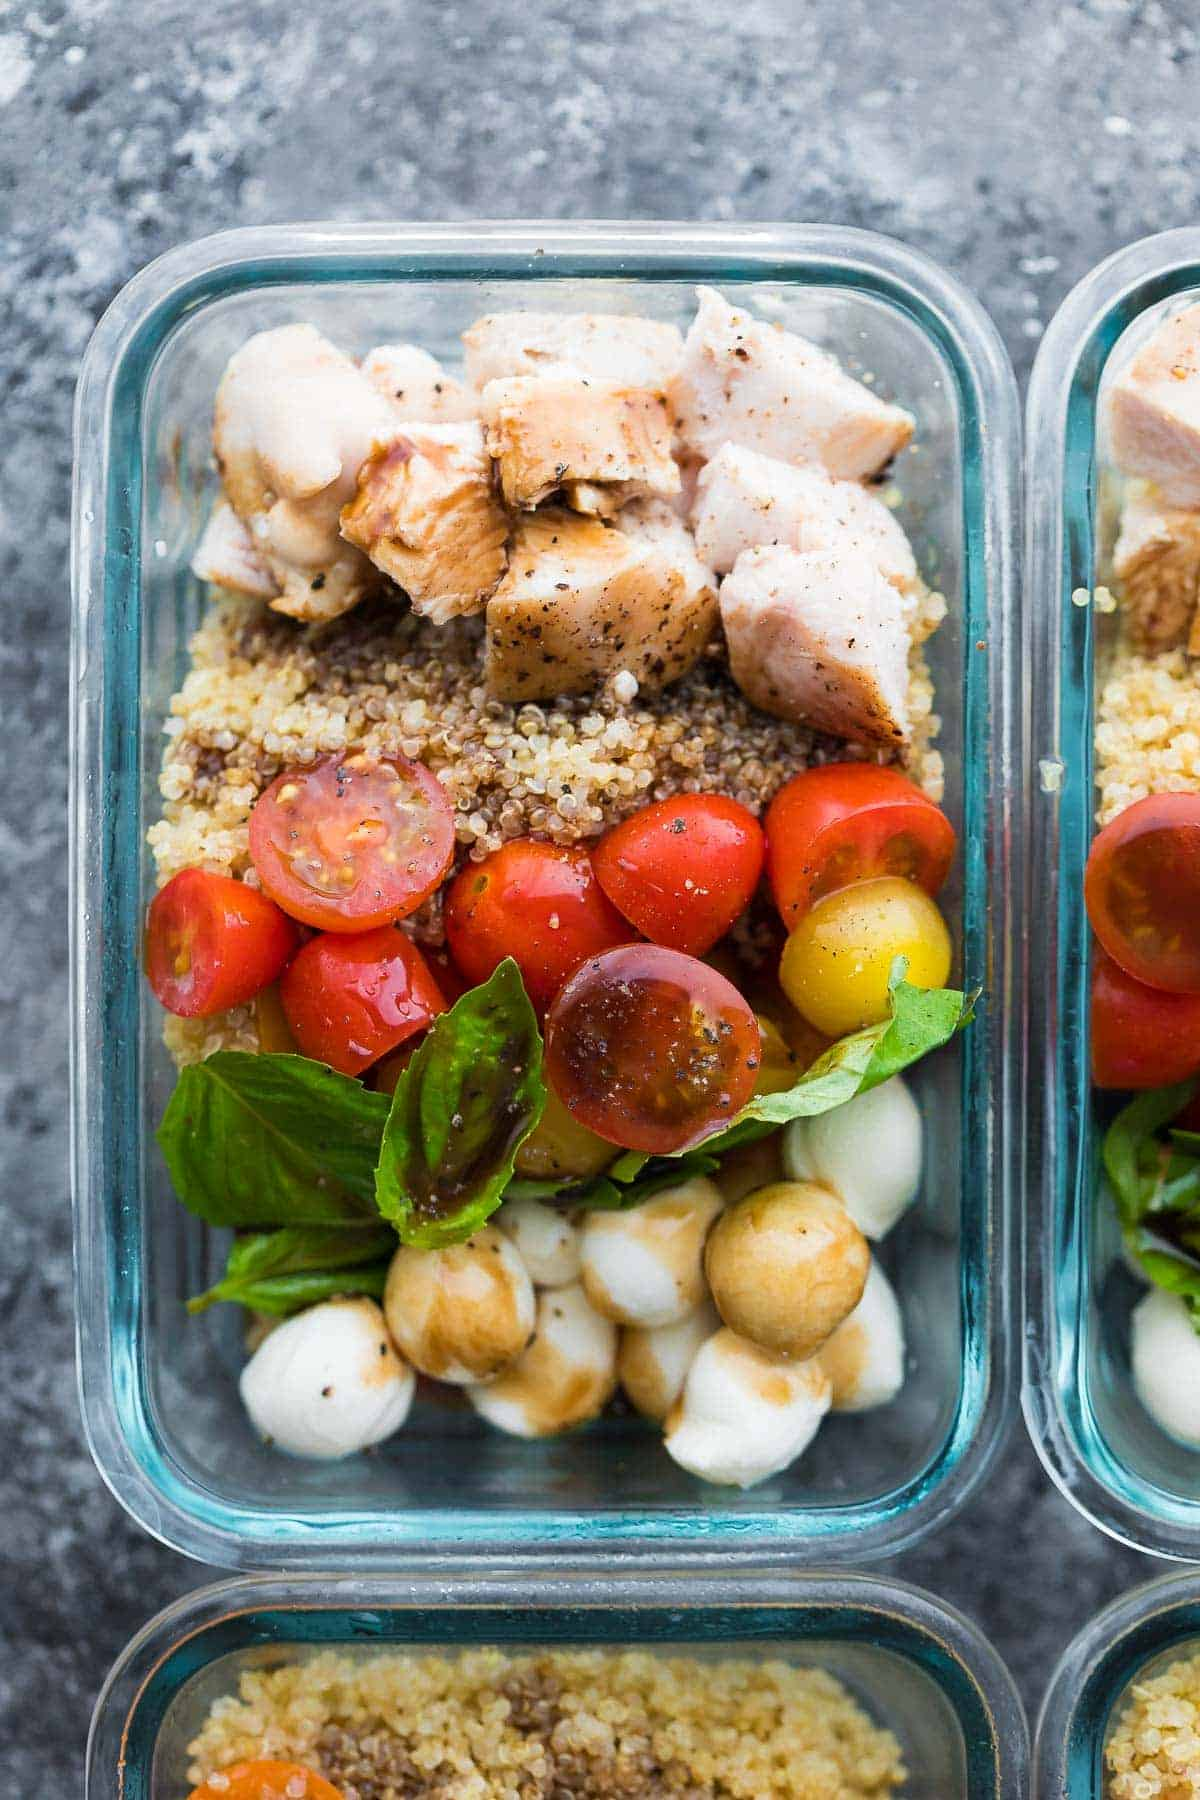 Overhead shot of Make Ahead Caprese Salad Preparation Bowls in Glass Containers